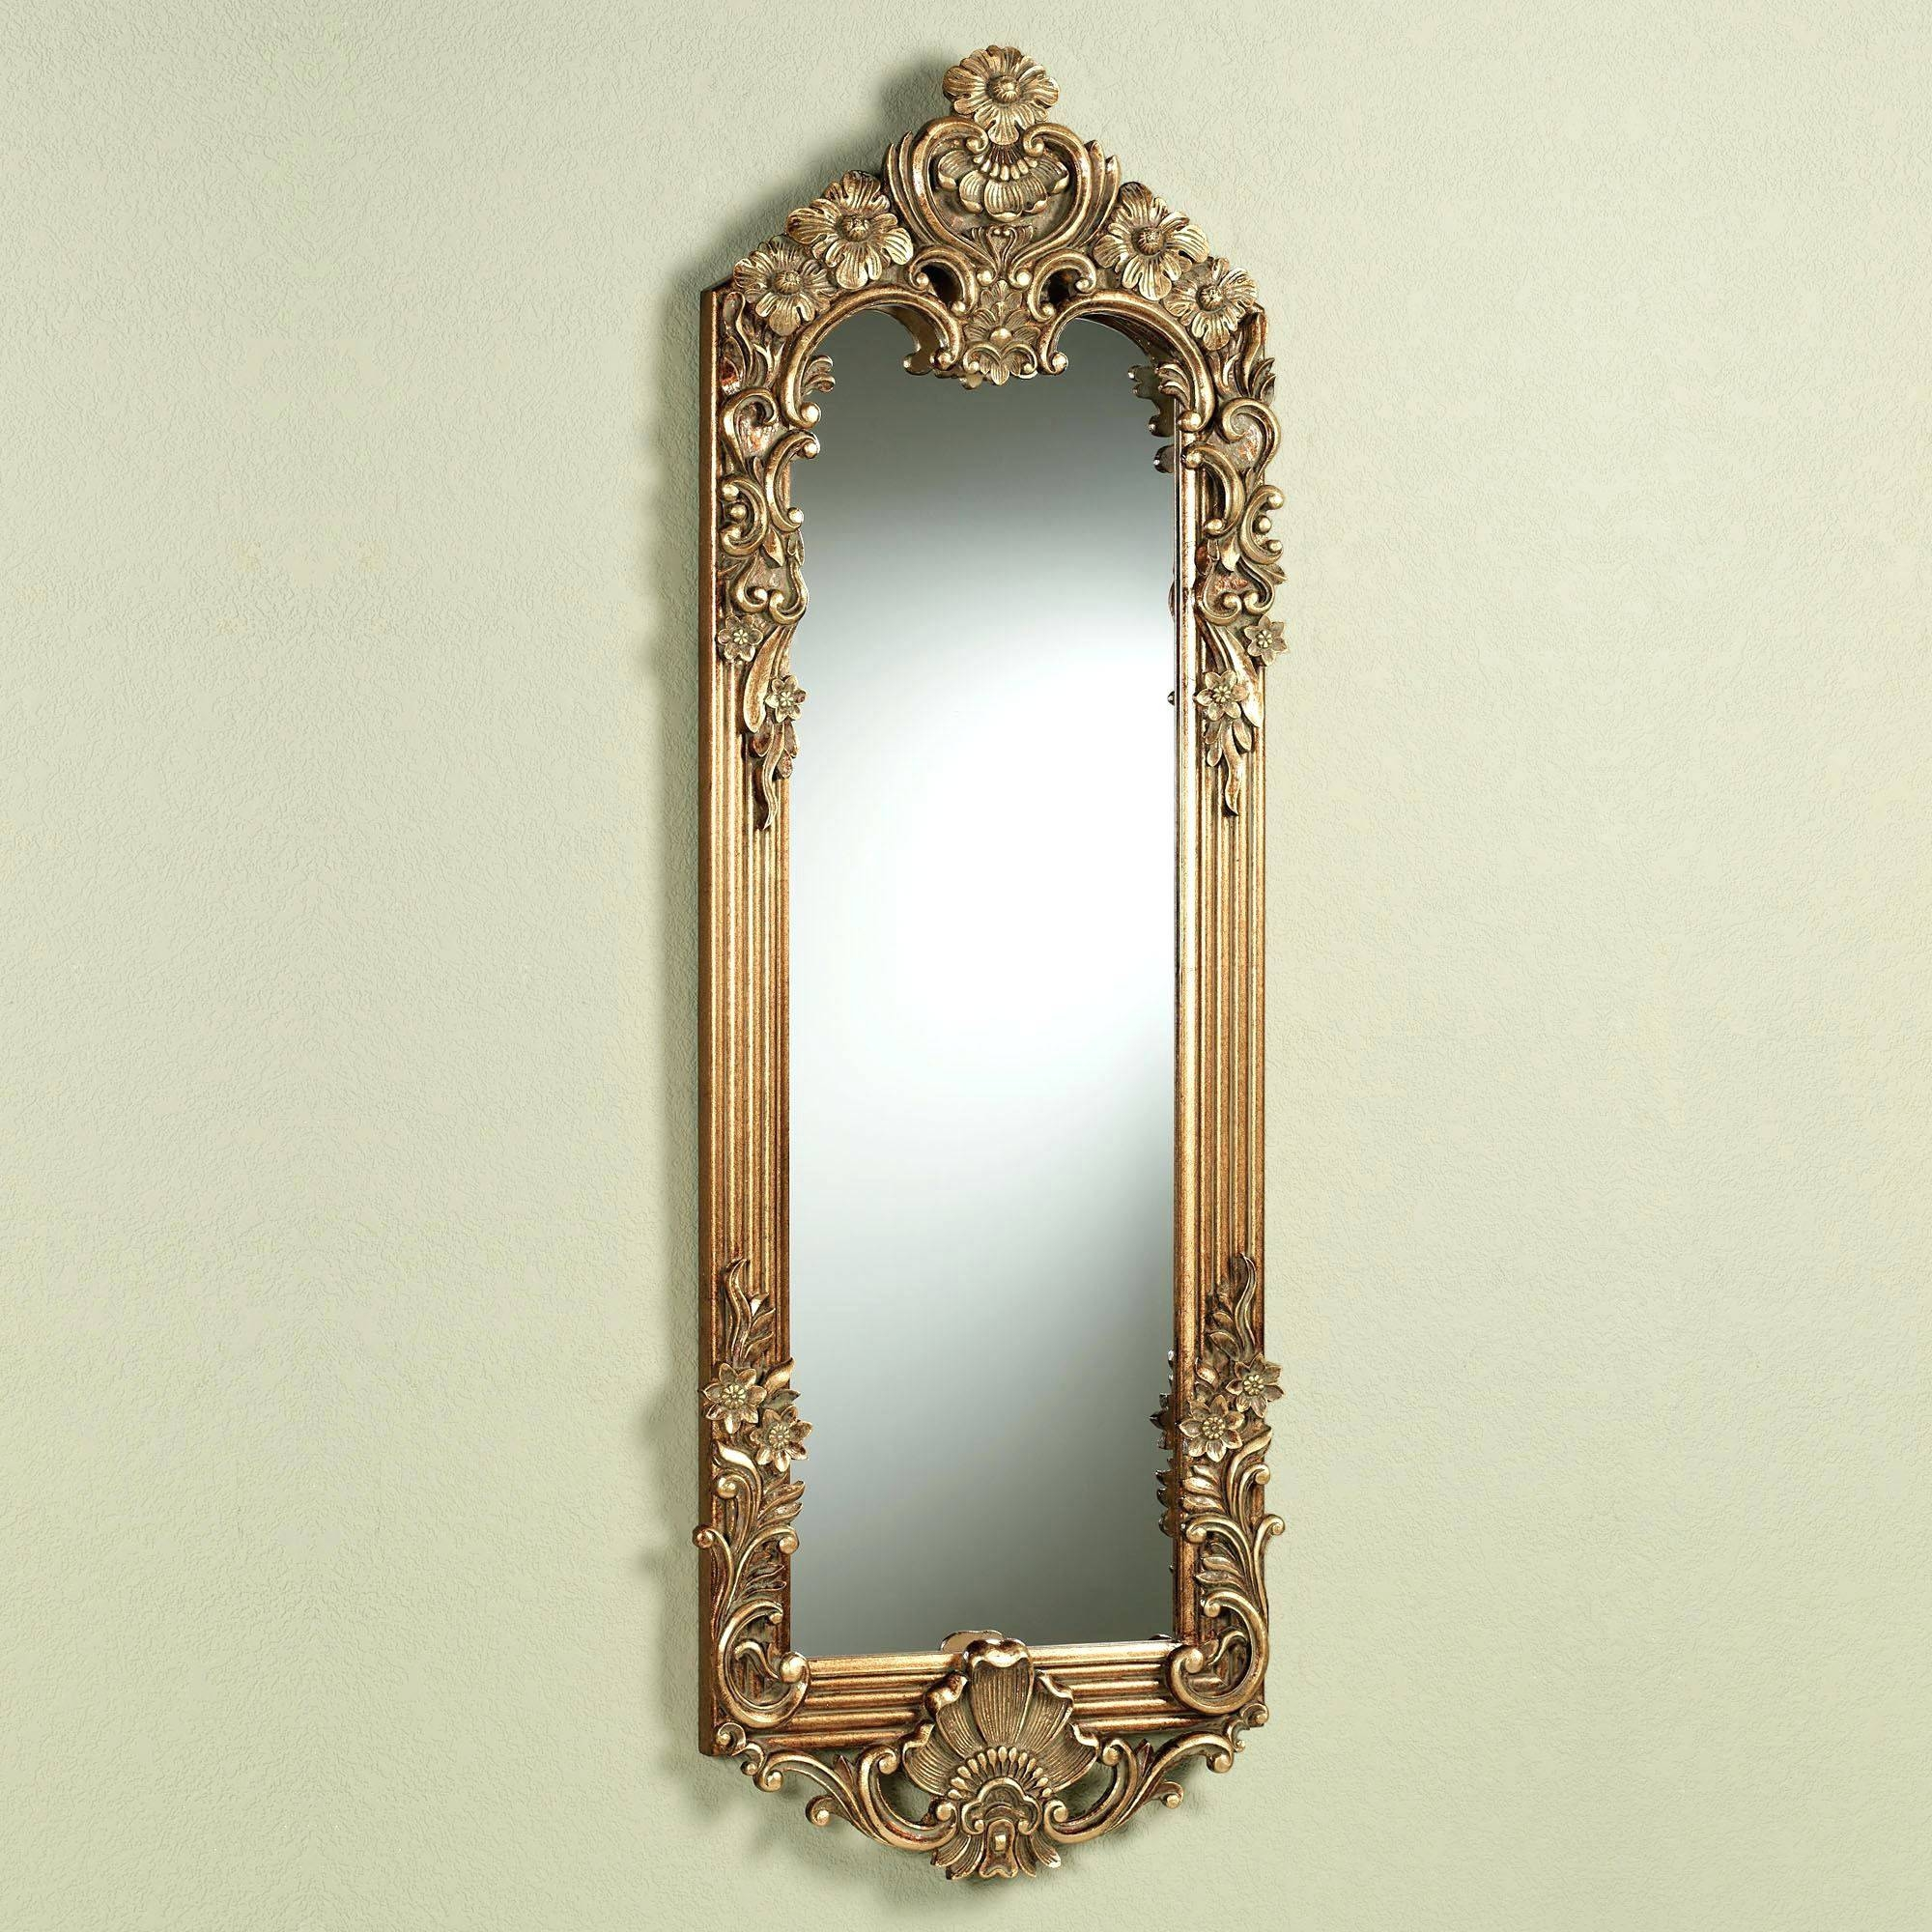 Wall Mirrors ~ Large Round Gold Wall Mirror Cool Small Gold For Gold Mirrors (View 9 of 15)